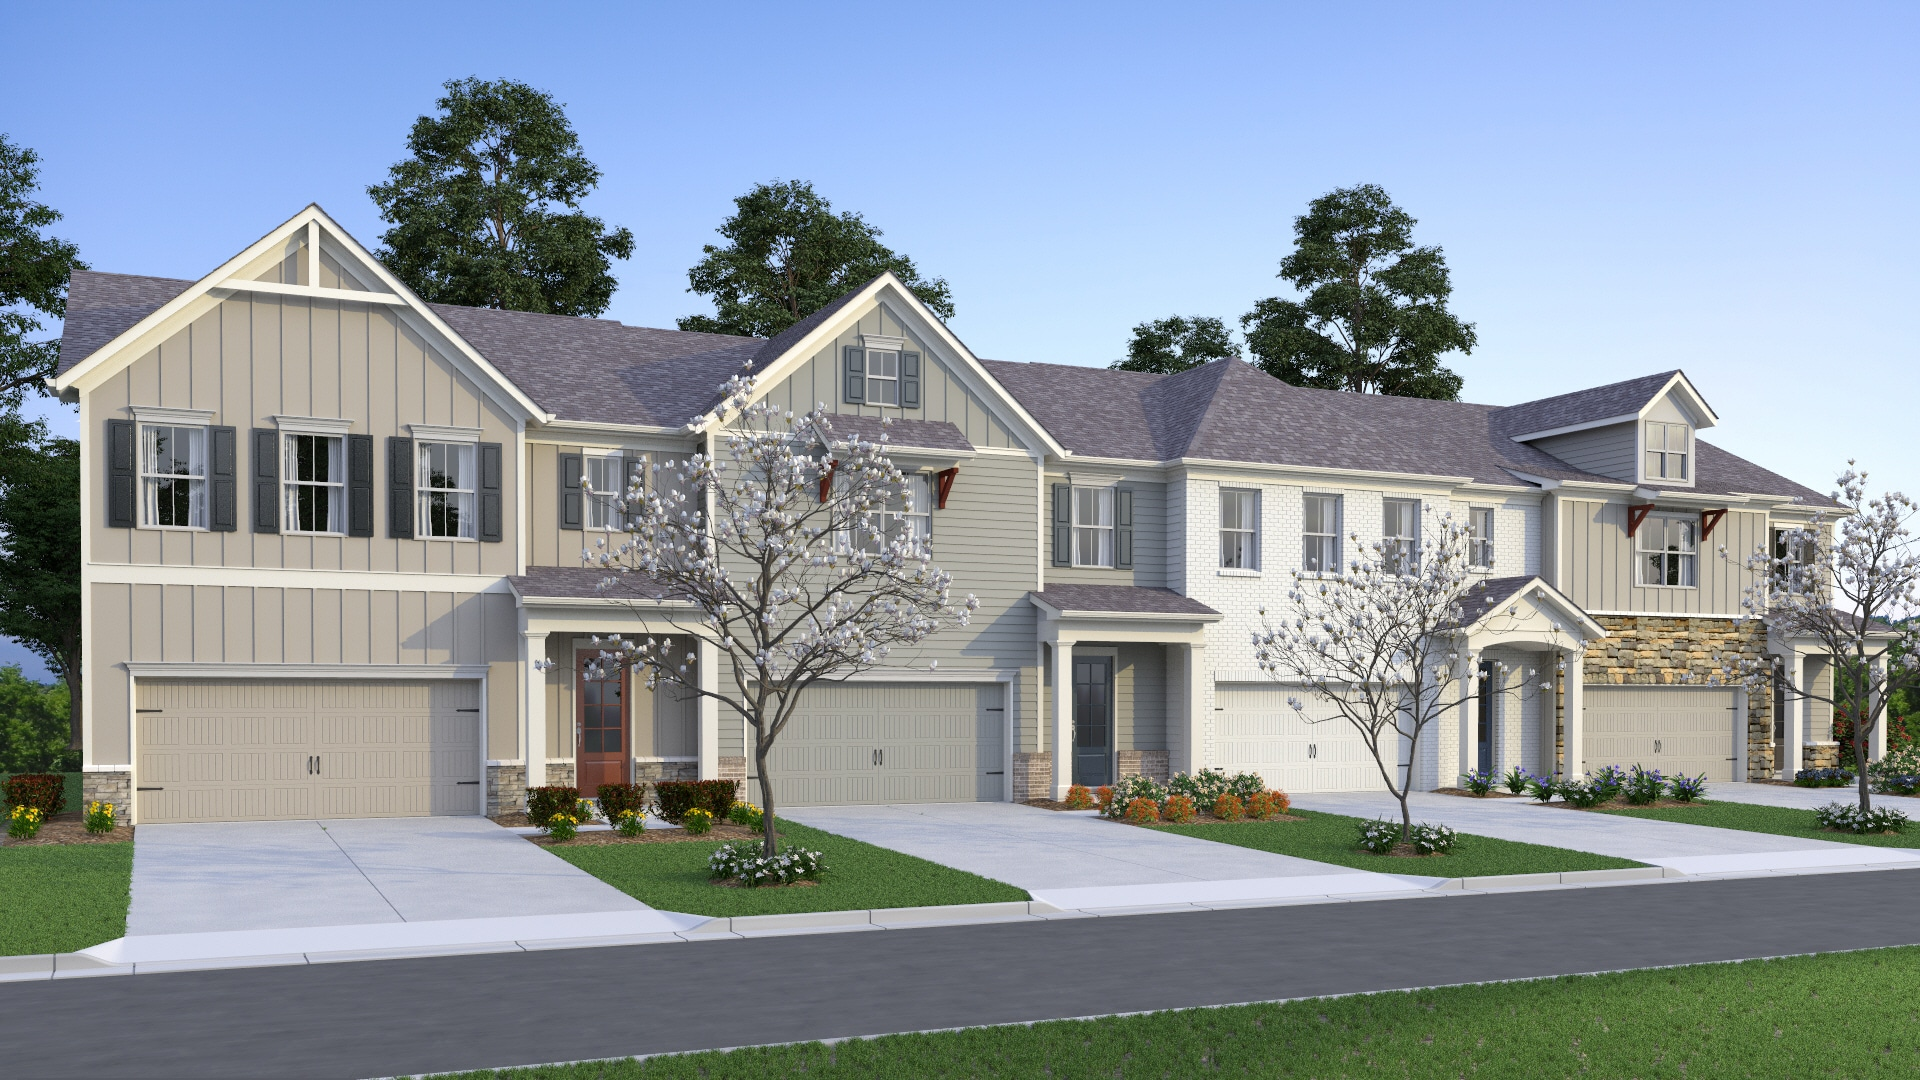 townhome rendering